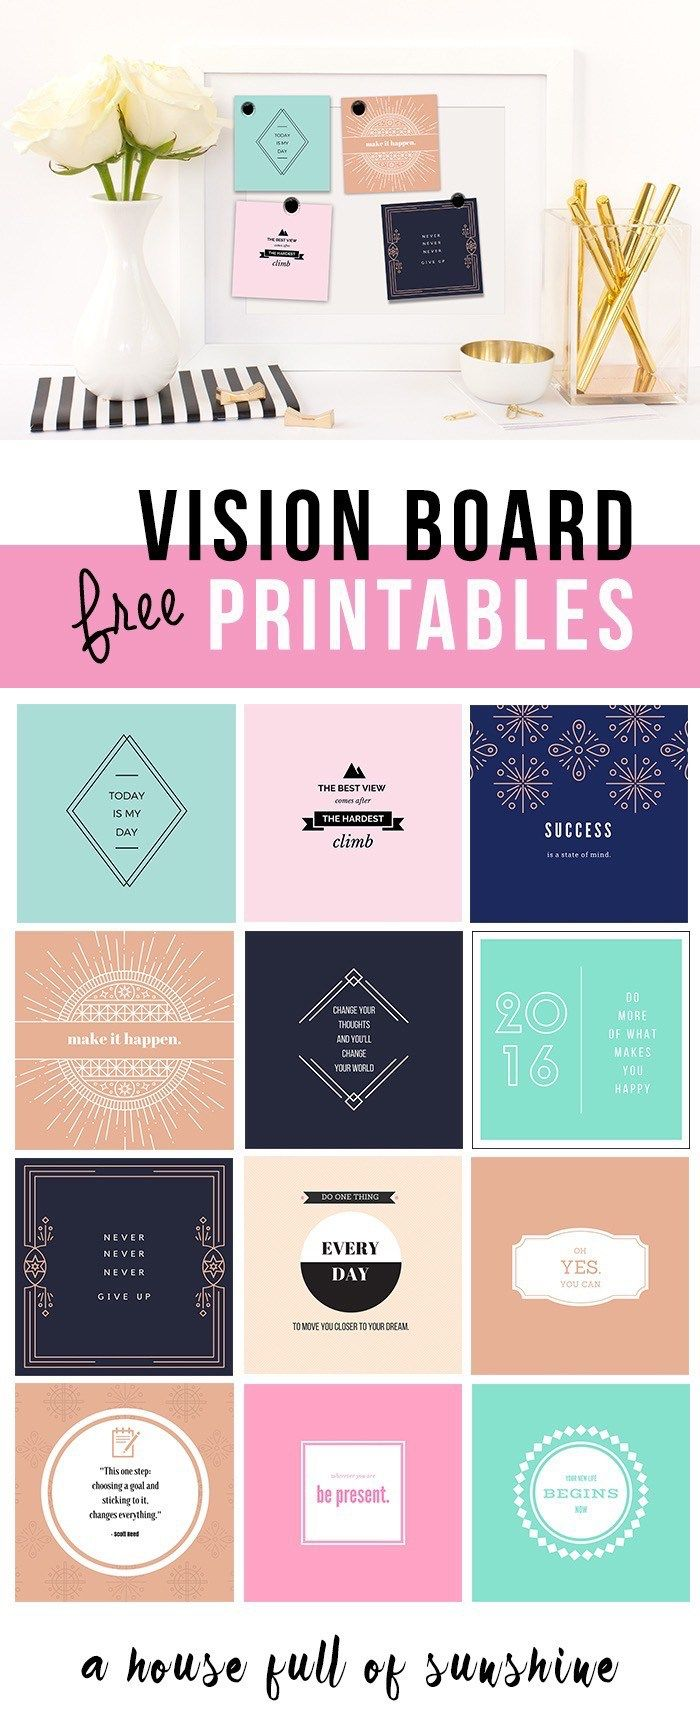 Stay focused and motivated with these cute free printables!